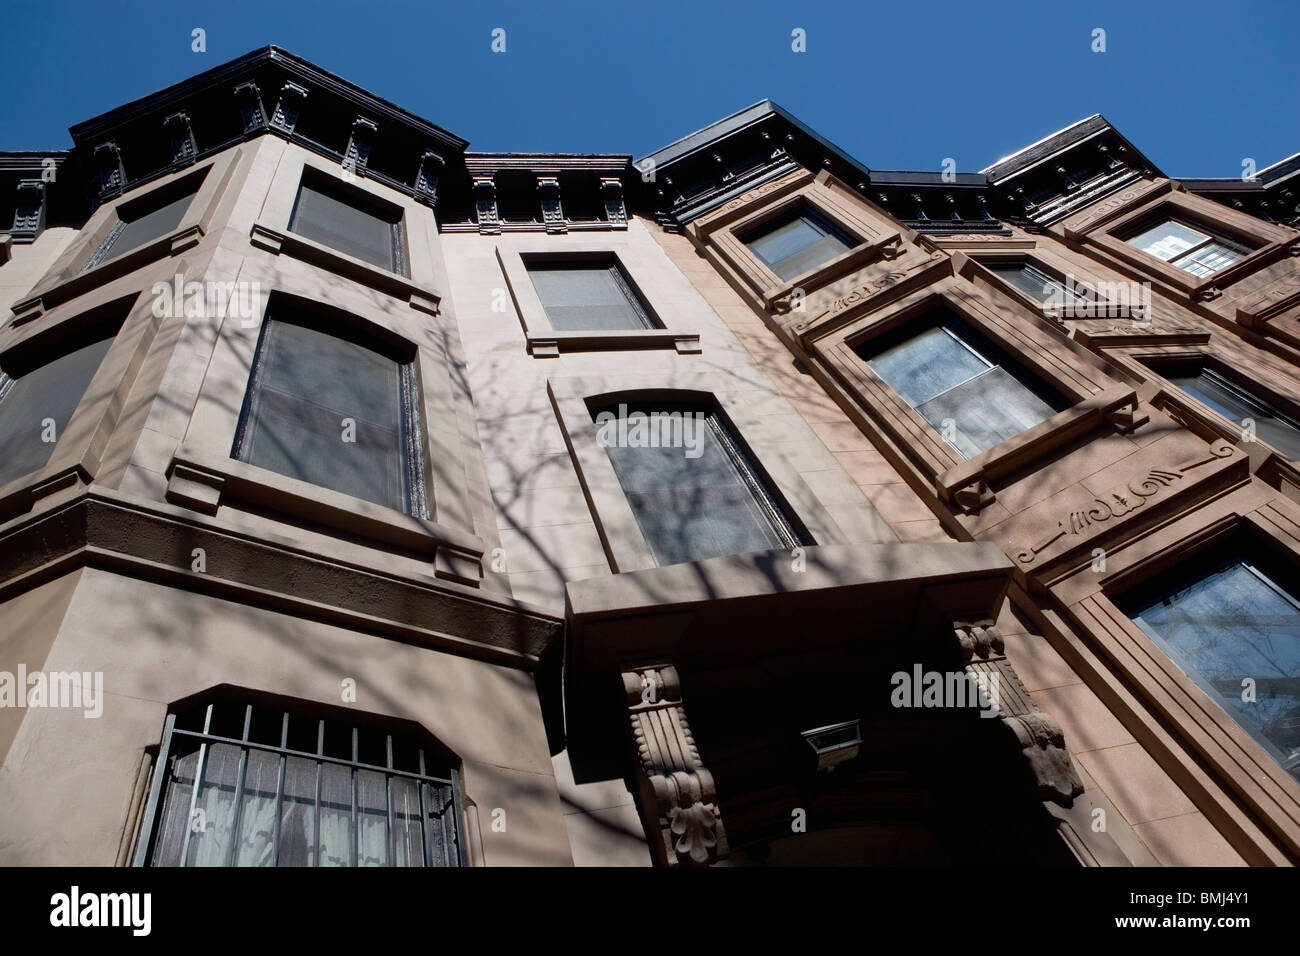 Low angle view of building - Stock Image